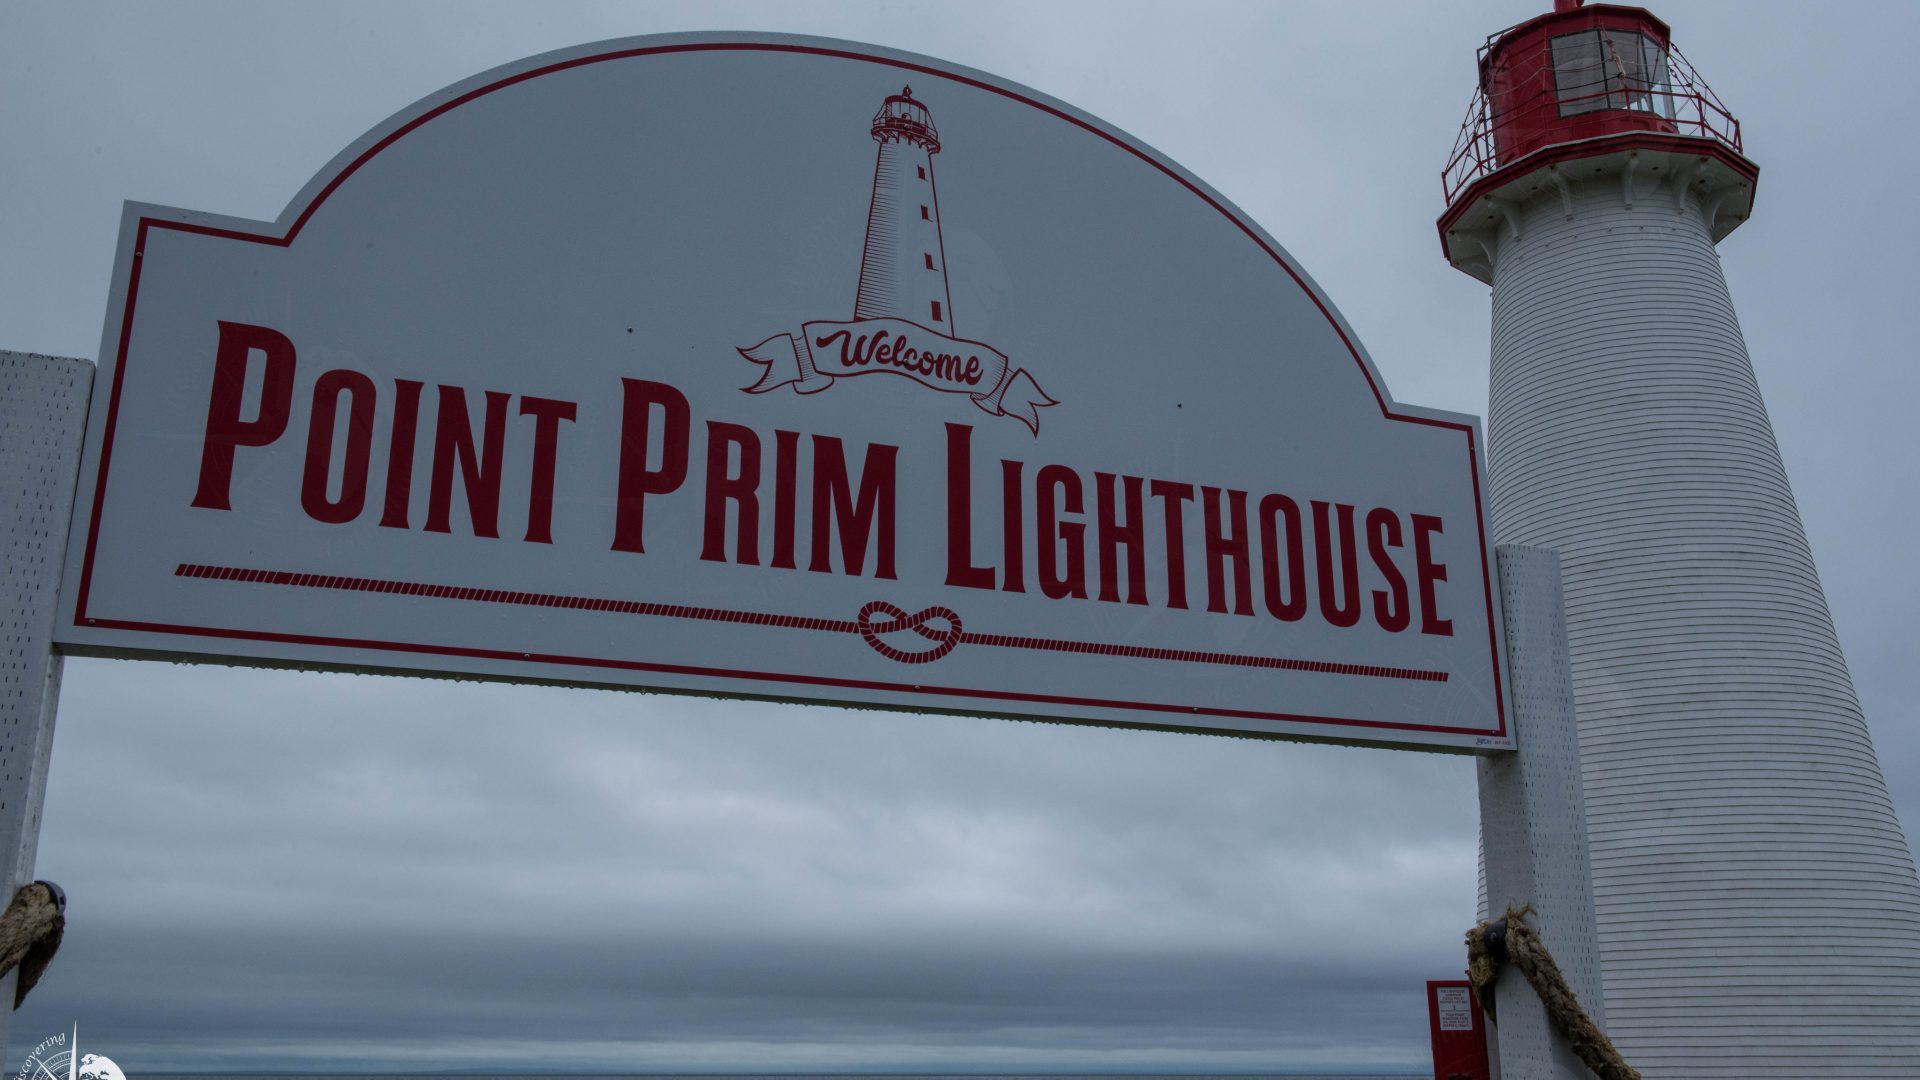 Discovering Point Prim Lighthouse